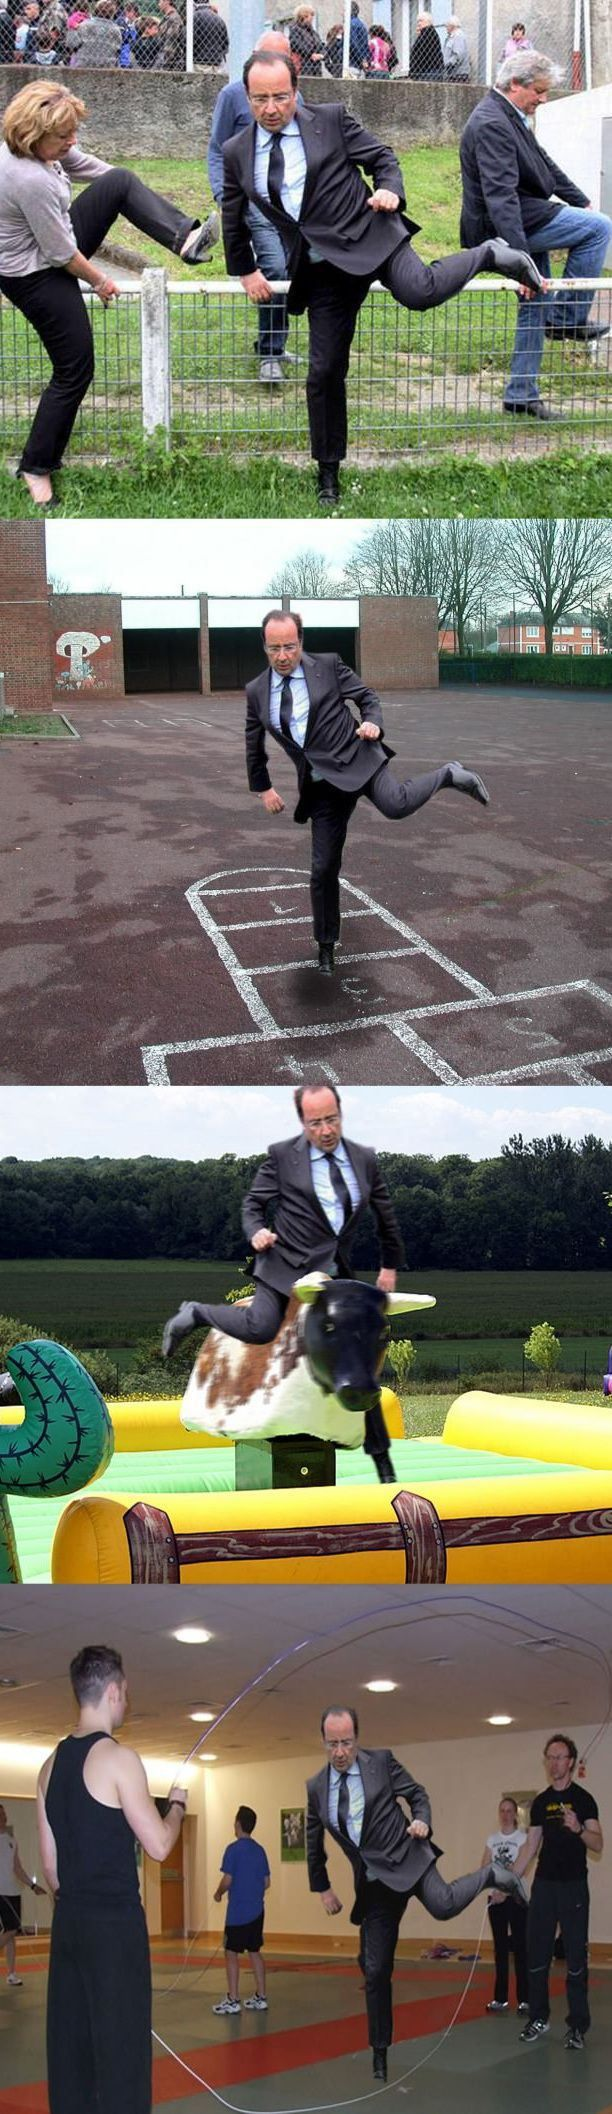 Francois Hollande feeling the quiche | 6Q4U